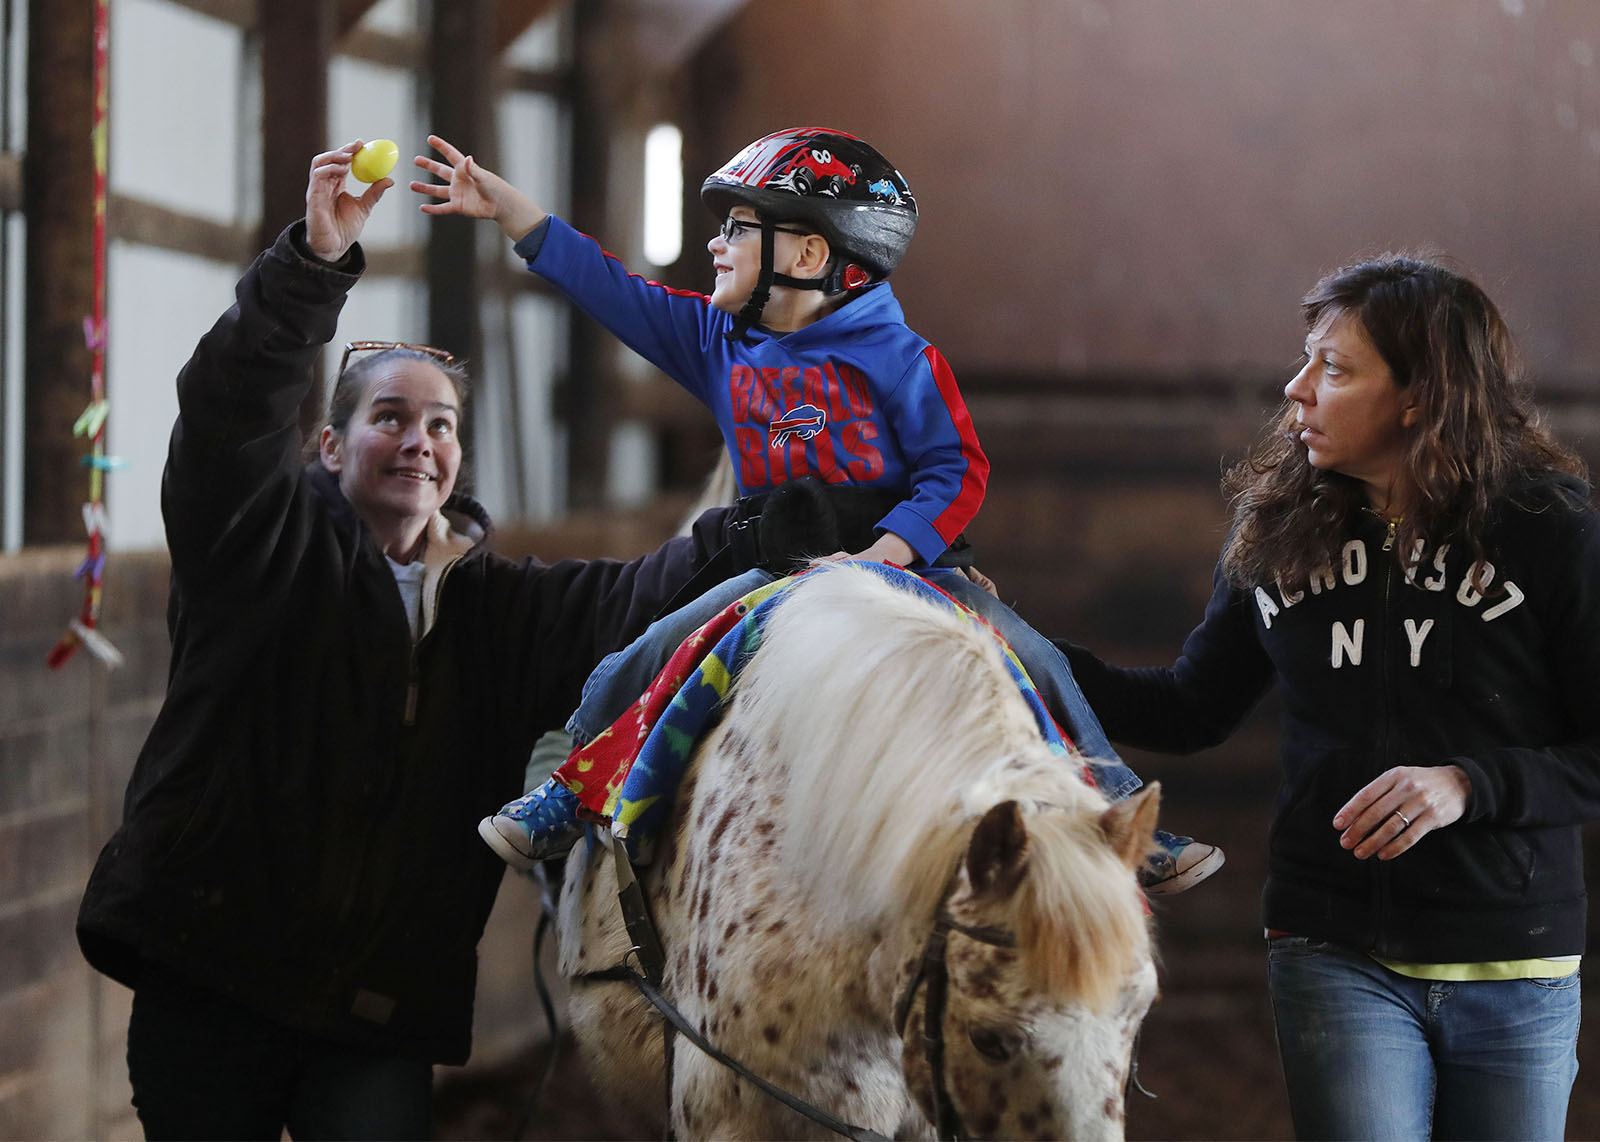 Jackson Buyea, 4, of Lancaster, does his hippotherapy session with therapists Patti McGrane, left, and Carol Heuser. Balancing on the horse helps Jackson develop core strength and teach him how to shift his weight. (Mark Mulville/Buffalo News)